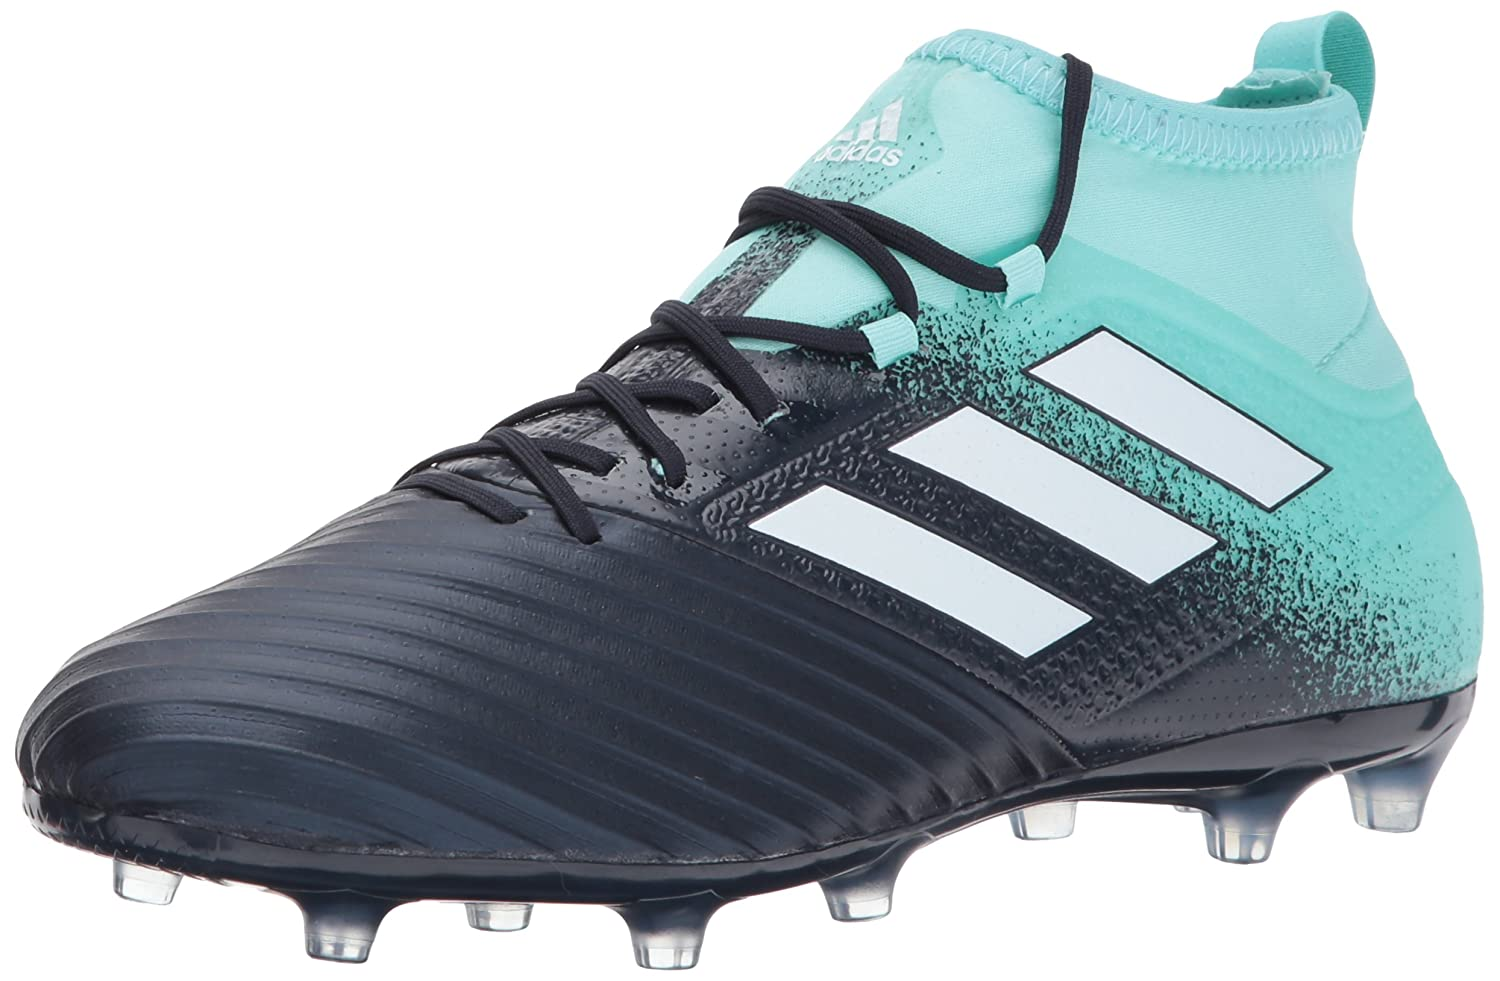 Adidas Originals Men's Ace 17.2 Firm Ground Cleats Soccer Shoe by Adidas+Originals